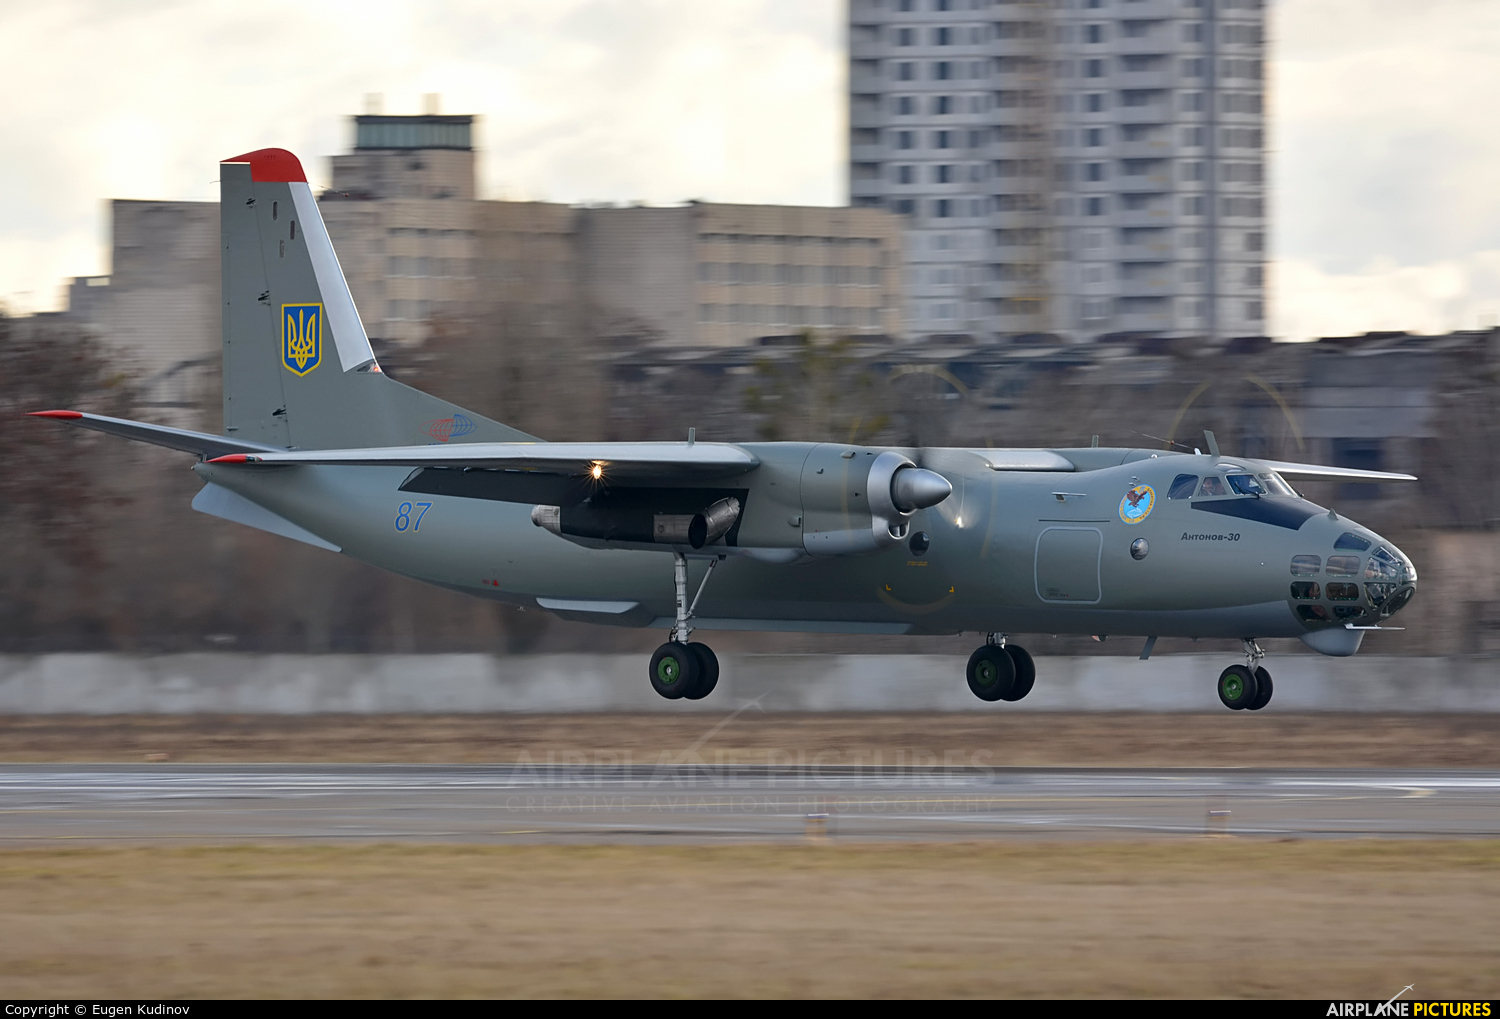 Ukraine - Air Force 87 aircraft at Kyiv - Zhulyany